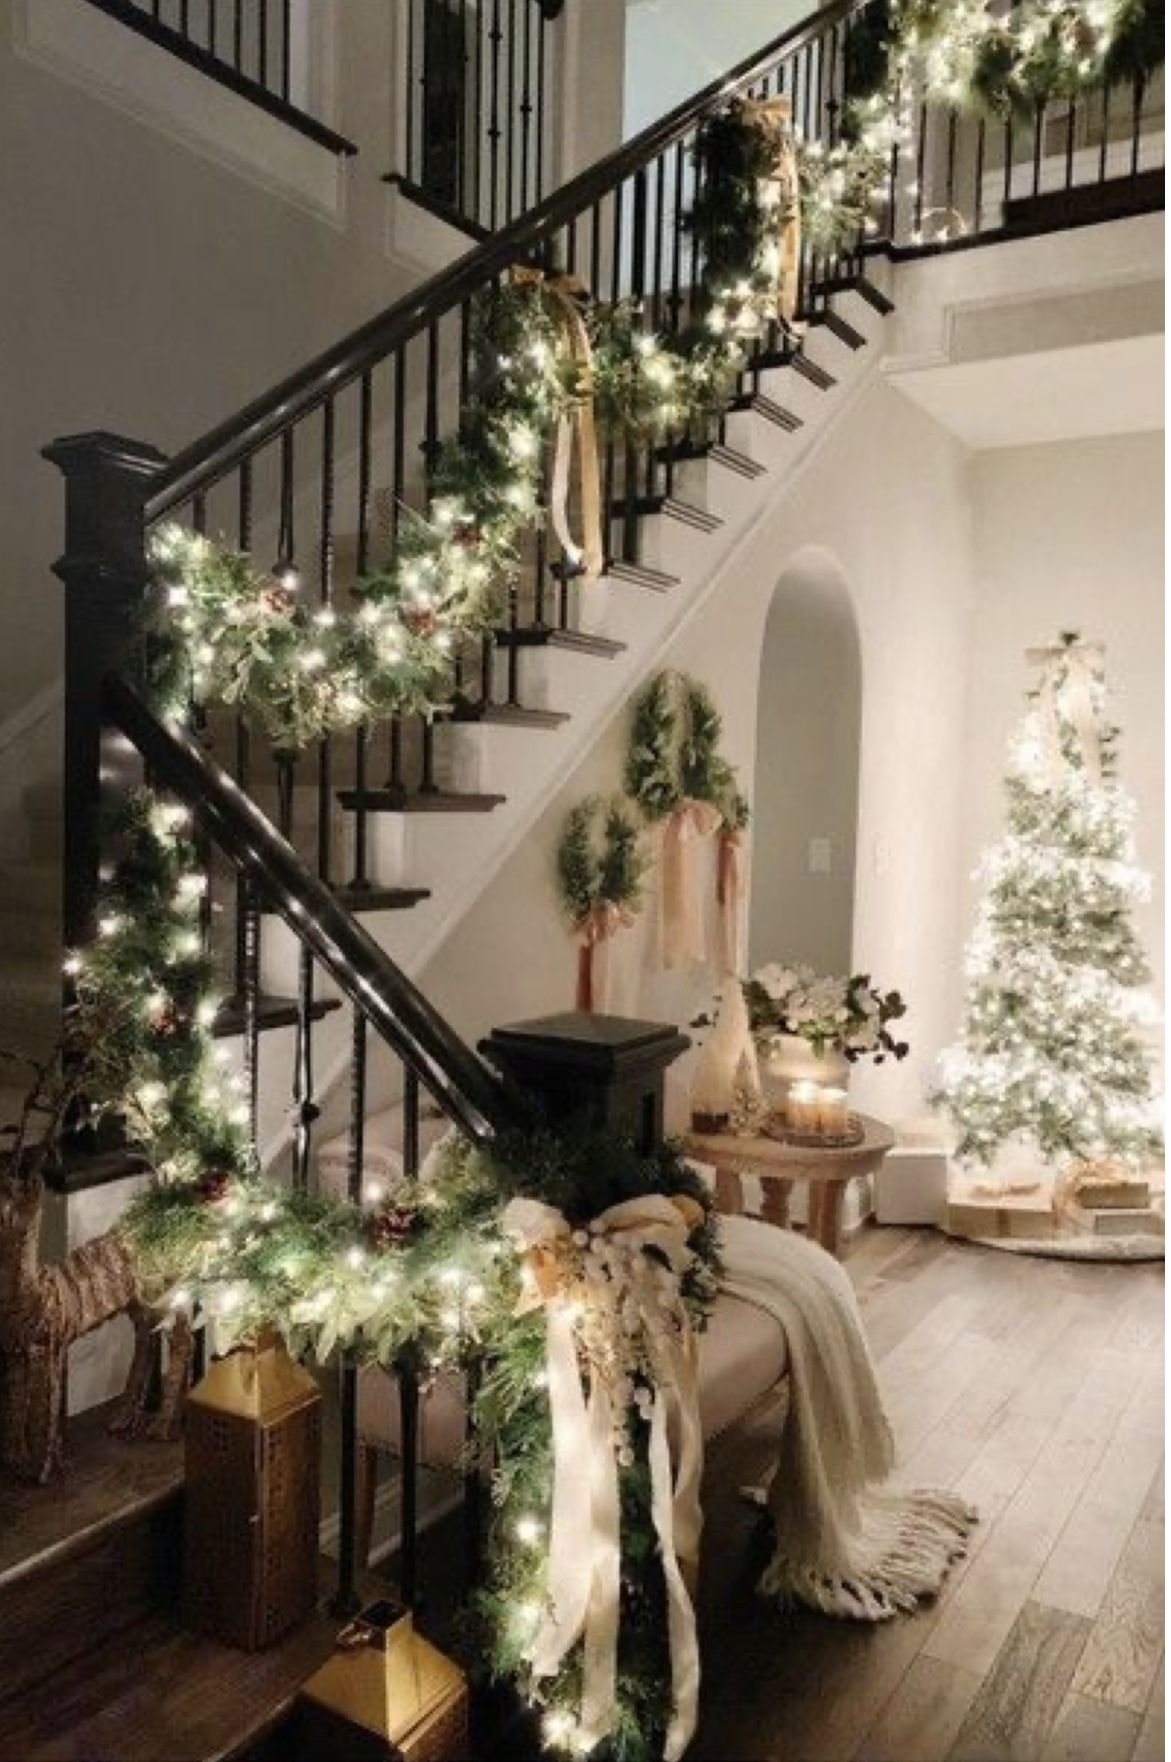 Christmas Decor We Are Drooling Over in 2020 Christmas